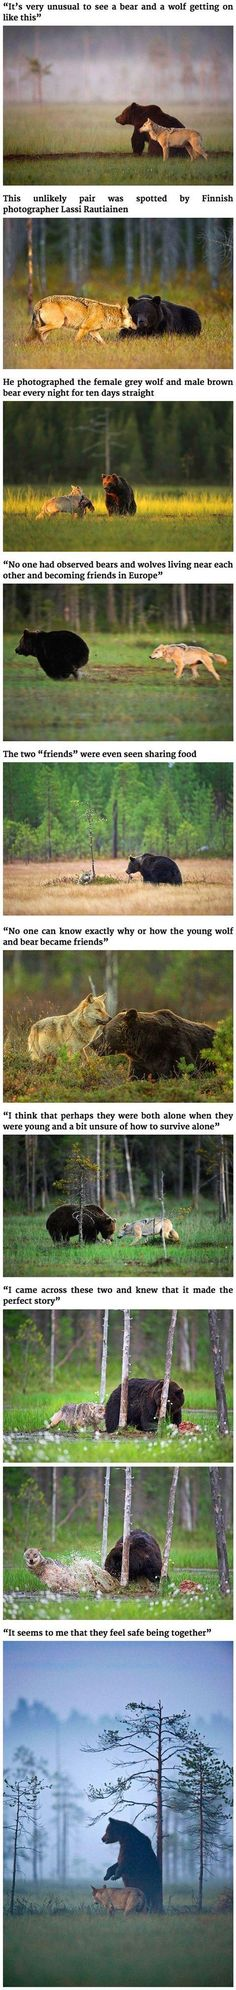 Wildlife: Unusual Friendship Between Wolf And Bear. Photography Wildlife: Unusual Friendship Between Wolf And Bear.,Photography Wildlife: Unusual Friendship Between Wolf And Bear. Cute Funny Animals, Funny Cute, Beautiful Creatures, Animals Beautiful, Beautiful Beautiful, Beautiful Pictures, Animals And Pets, Baby Animals, Nature Animals